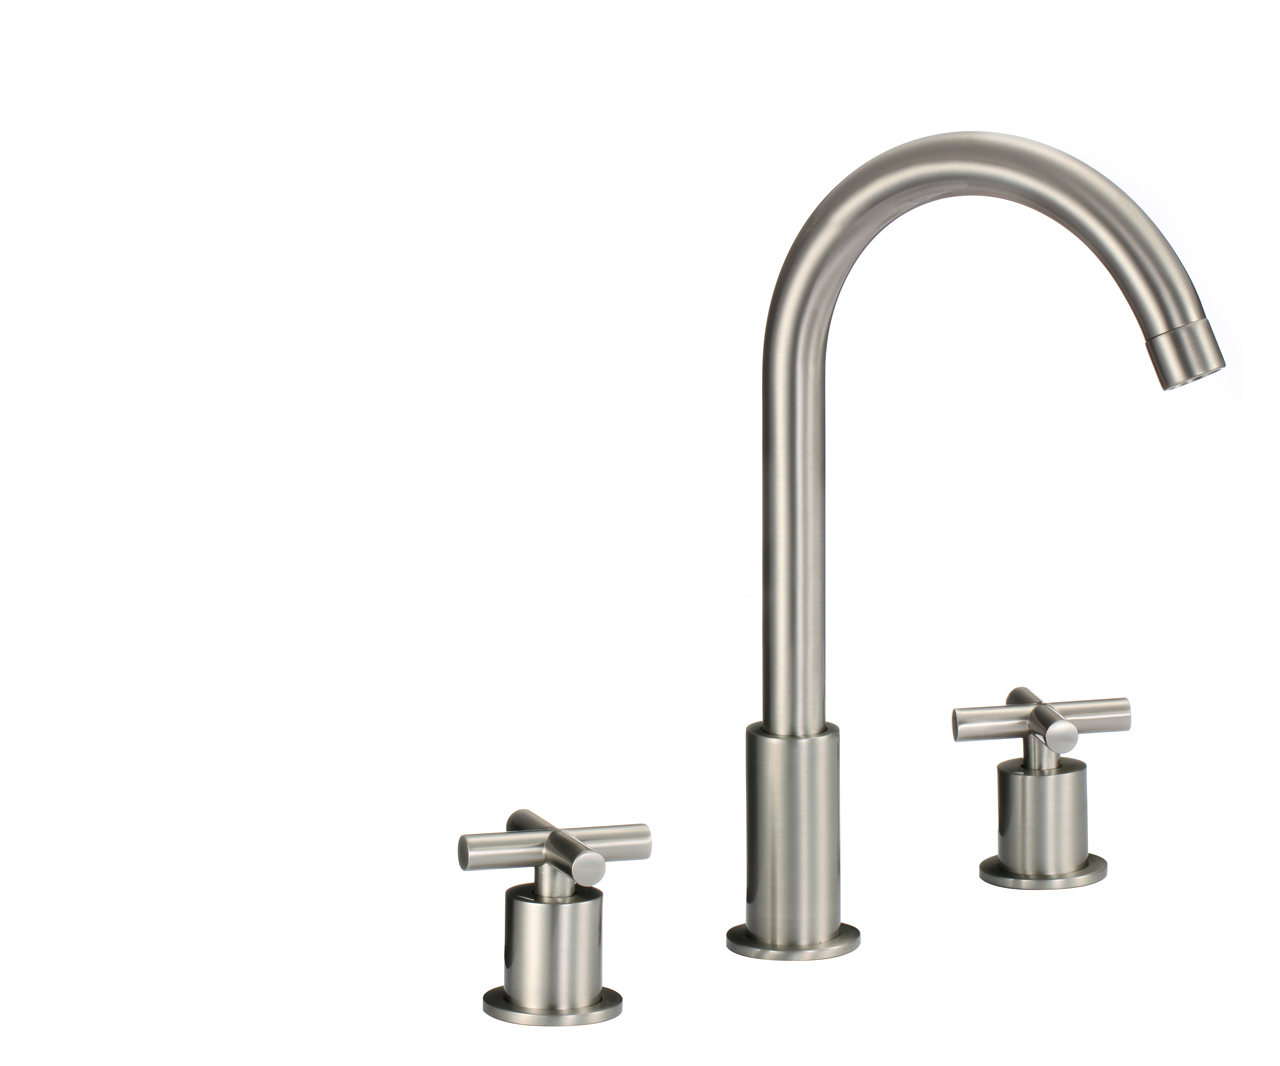 Shop Florence Dual Handle Solid Brass Bathroom Sink Faucet At Bathselect